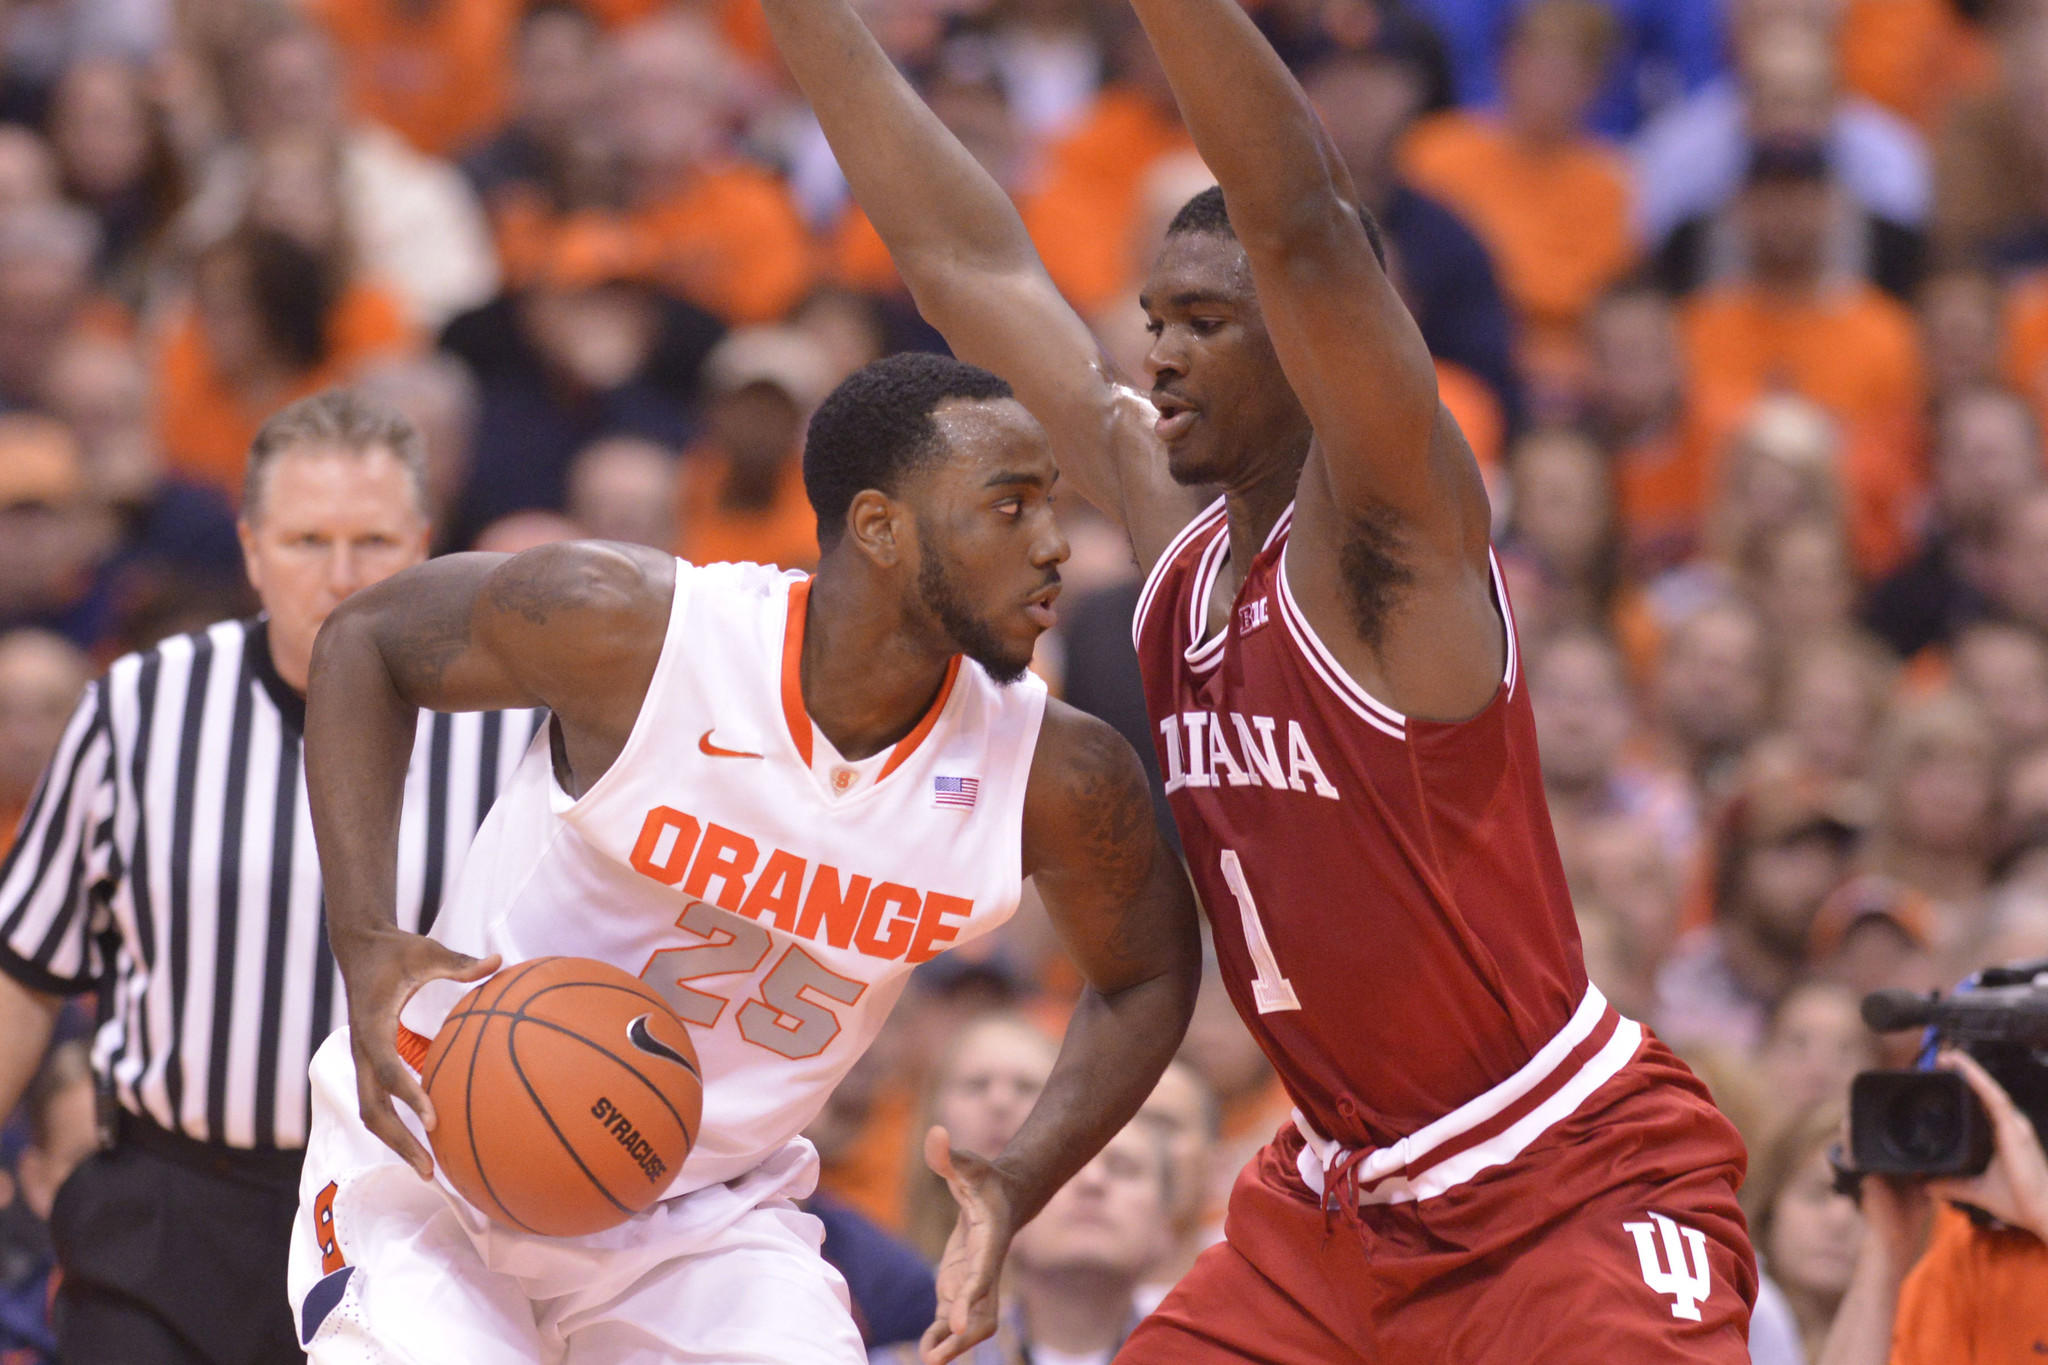 Syracuse's Rakeem Christmas dribbles the ball as Indiana's Noah Vonleh defends during the first half.